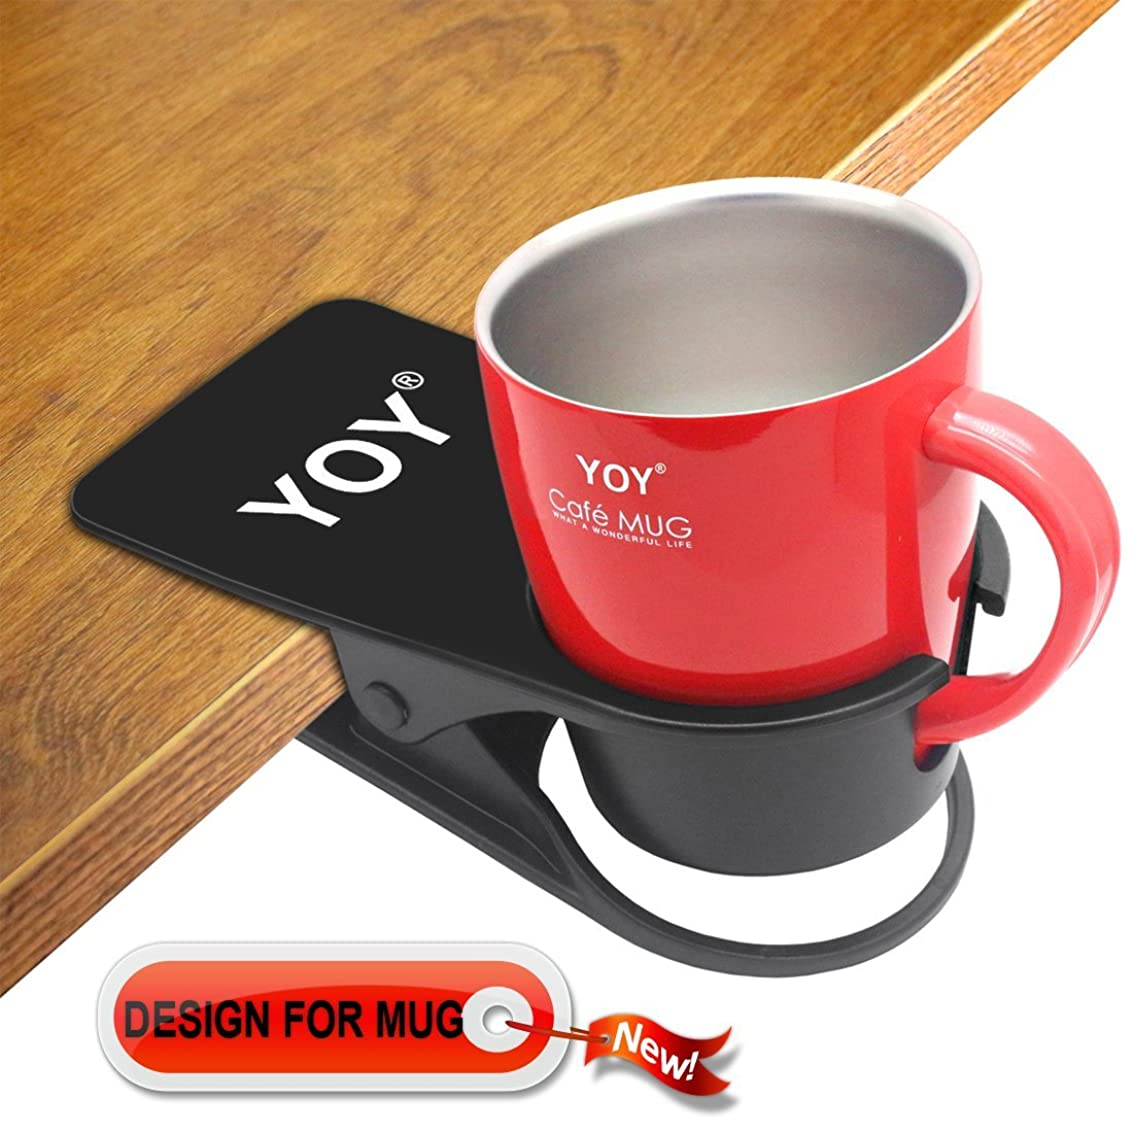 YOY Drink Cup Holder Clip - Table Desk Side Water Glass Beer Bottle Beverage Soda Coffee Mug Holder Cup Saucer Clip Design for Home Office, Black bdiob0273653384